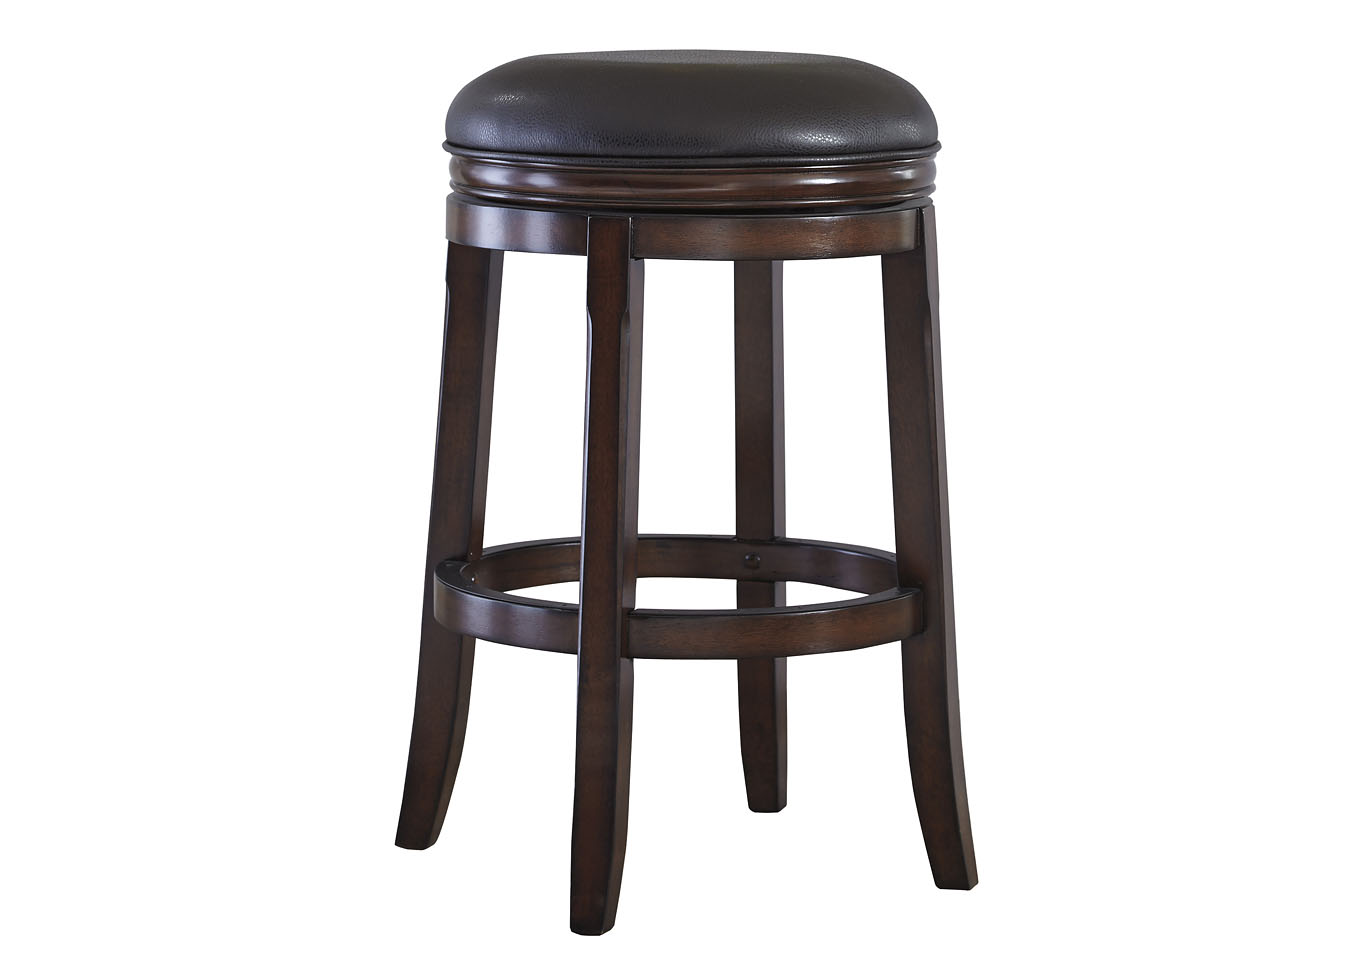 Porter Rustic Brown Tall Upholstered Swivel Stool (Set of 2),ABF Millennium